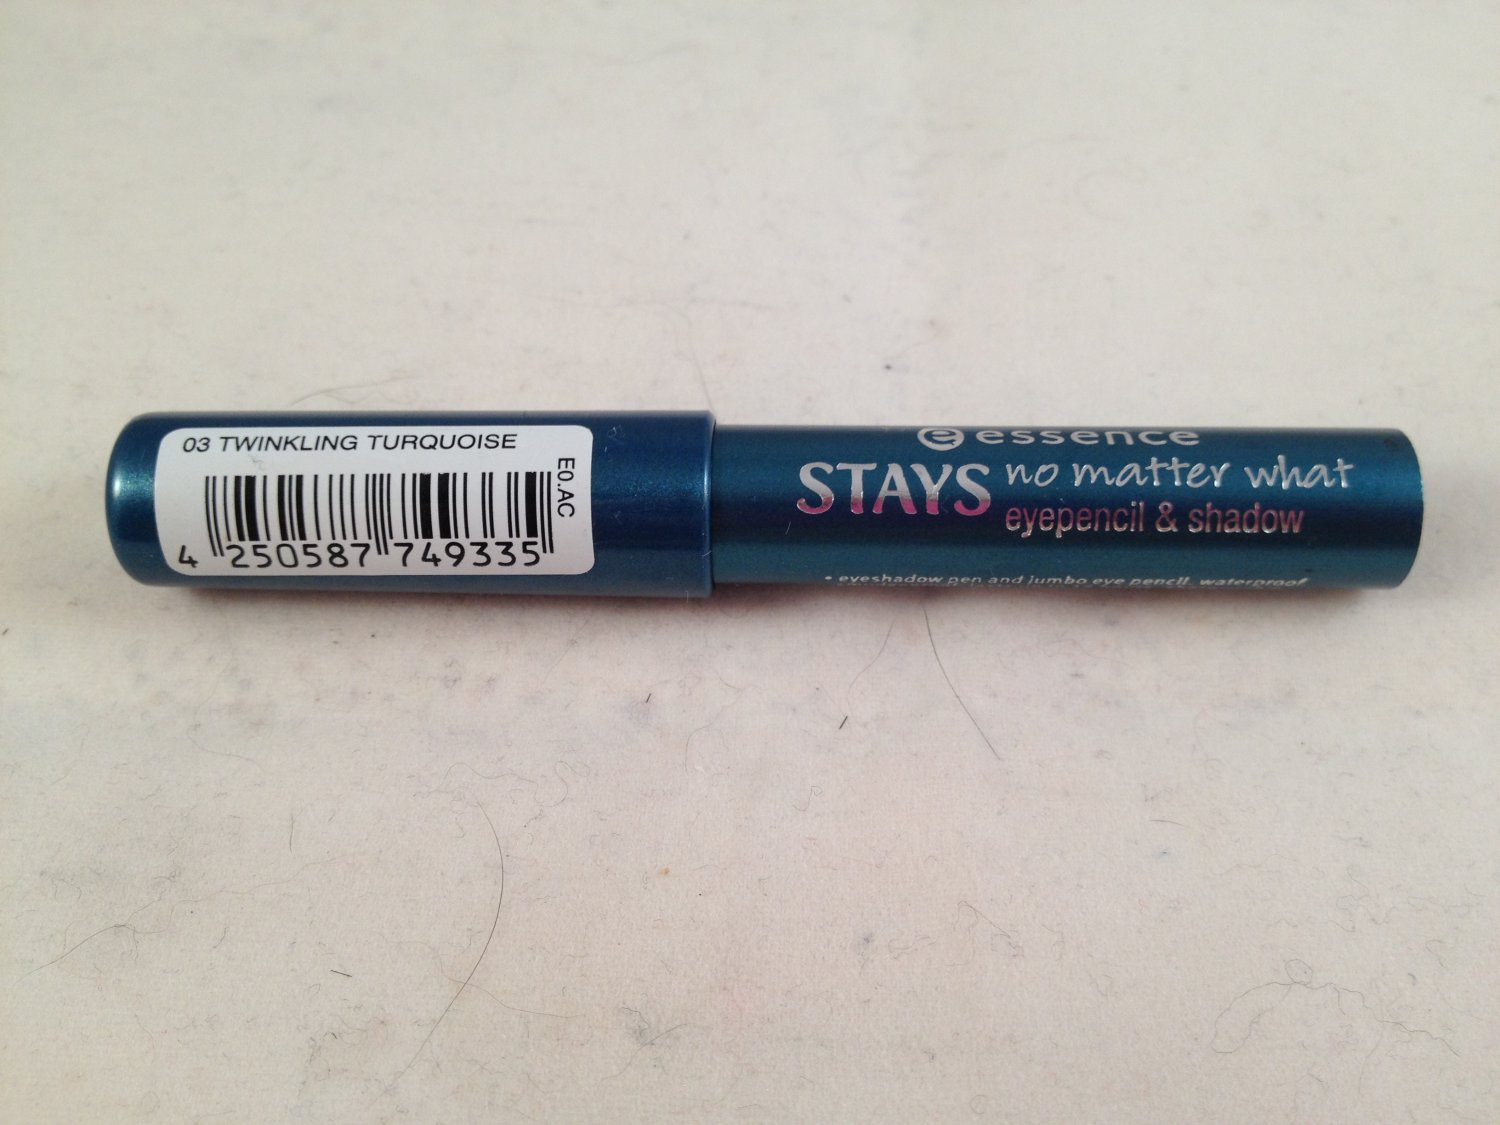 Essence Stays No Matter What Eye Pencil & Shadow #03 Twinkling Turquoise liner eyeliner eyeshadow